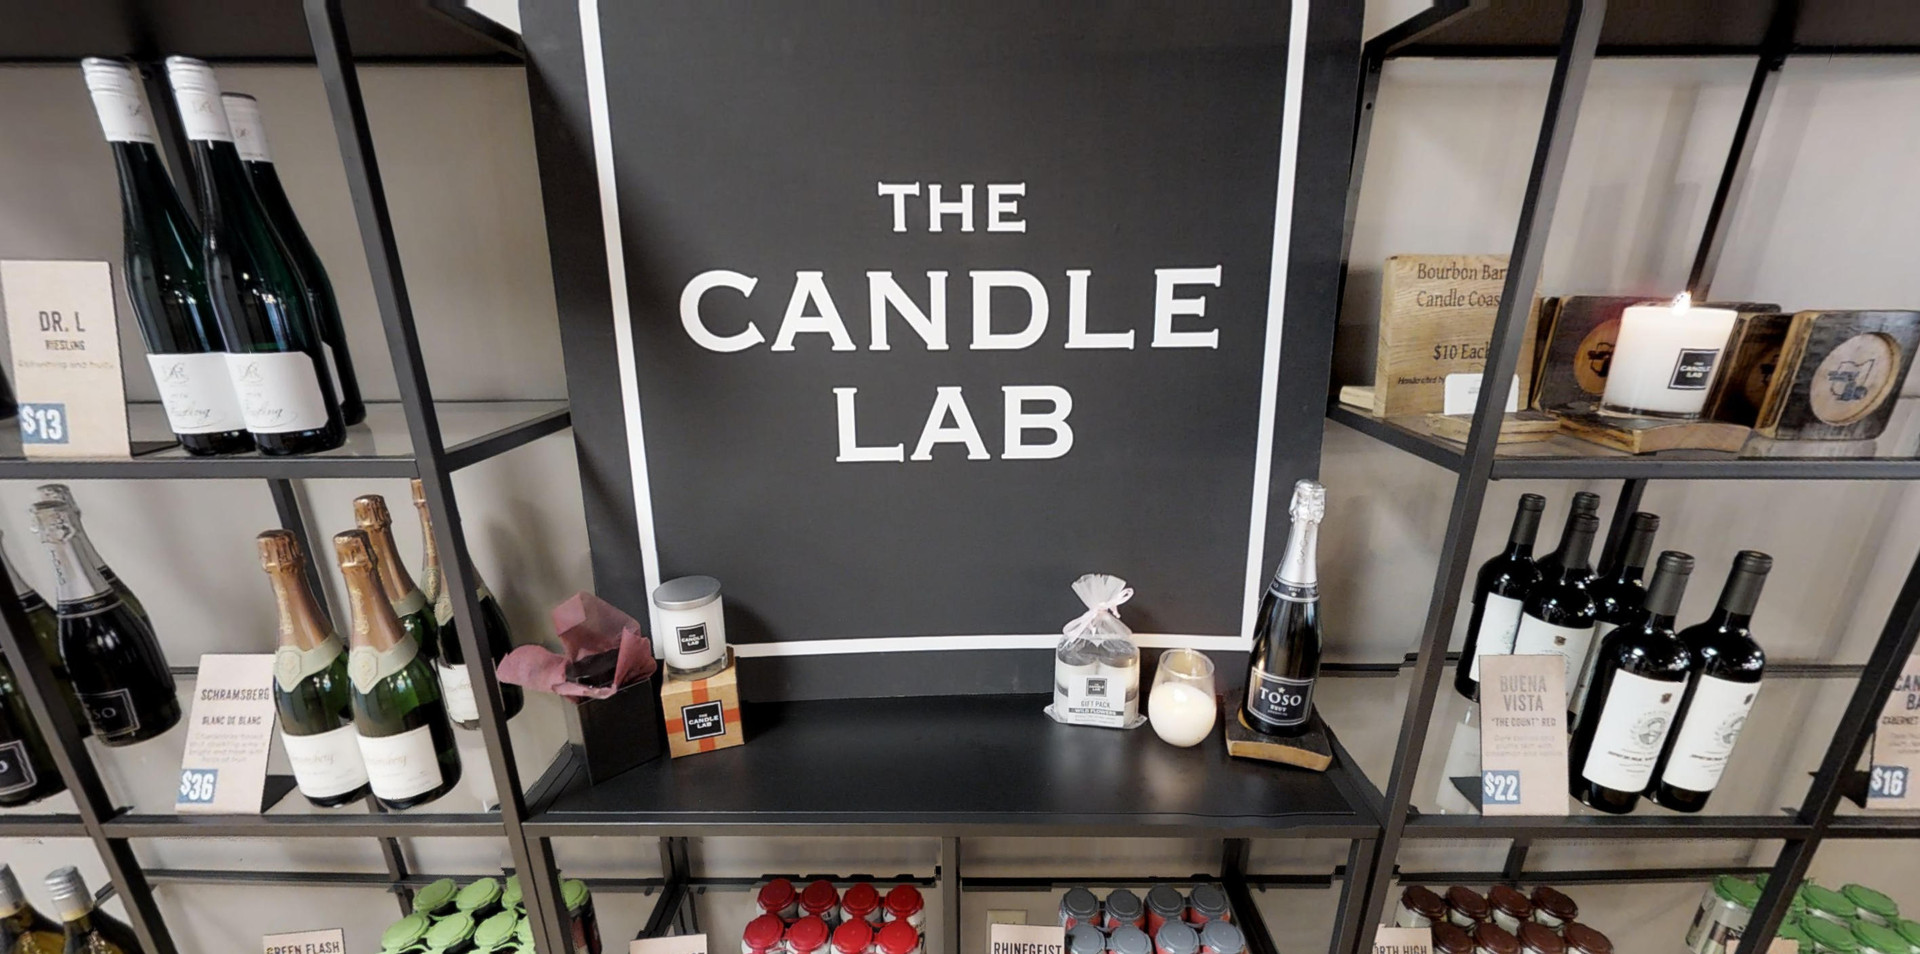 The Candle Lab